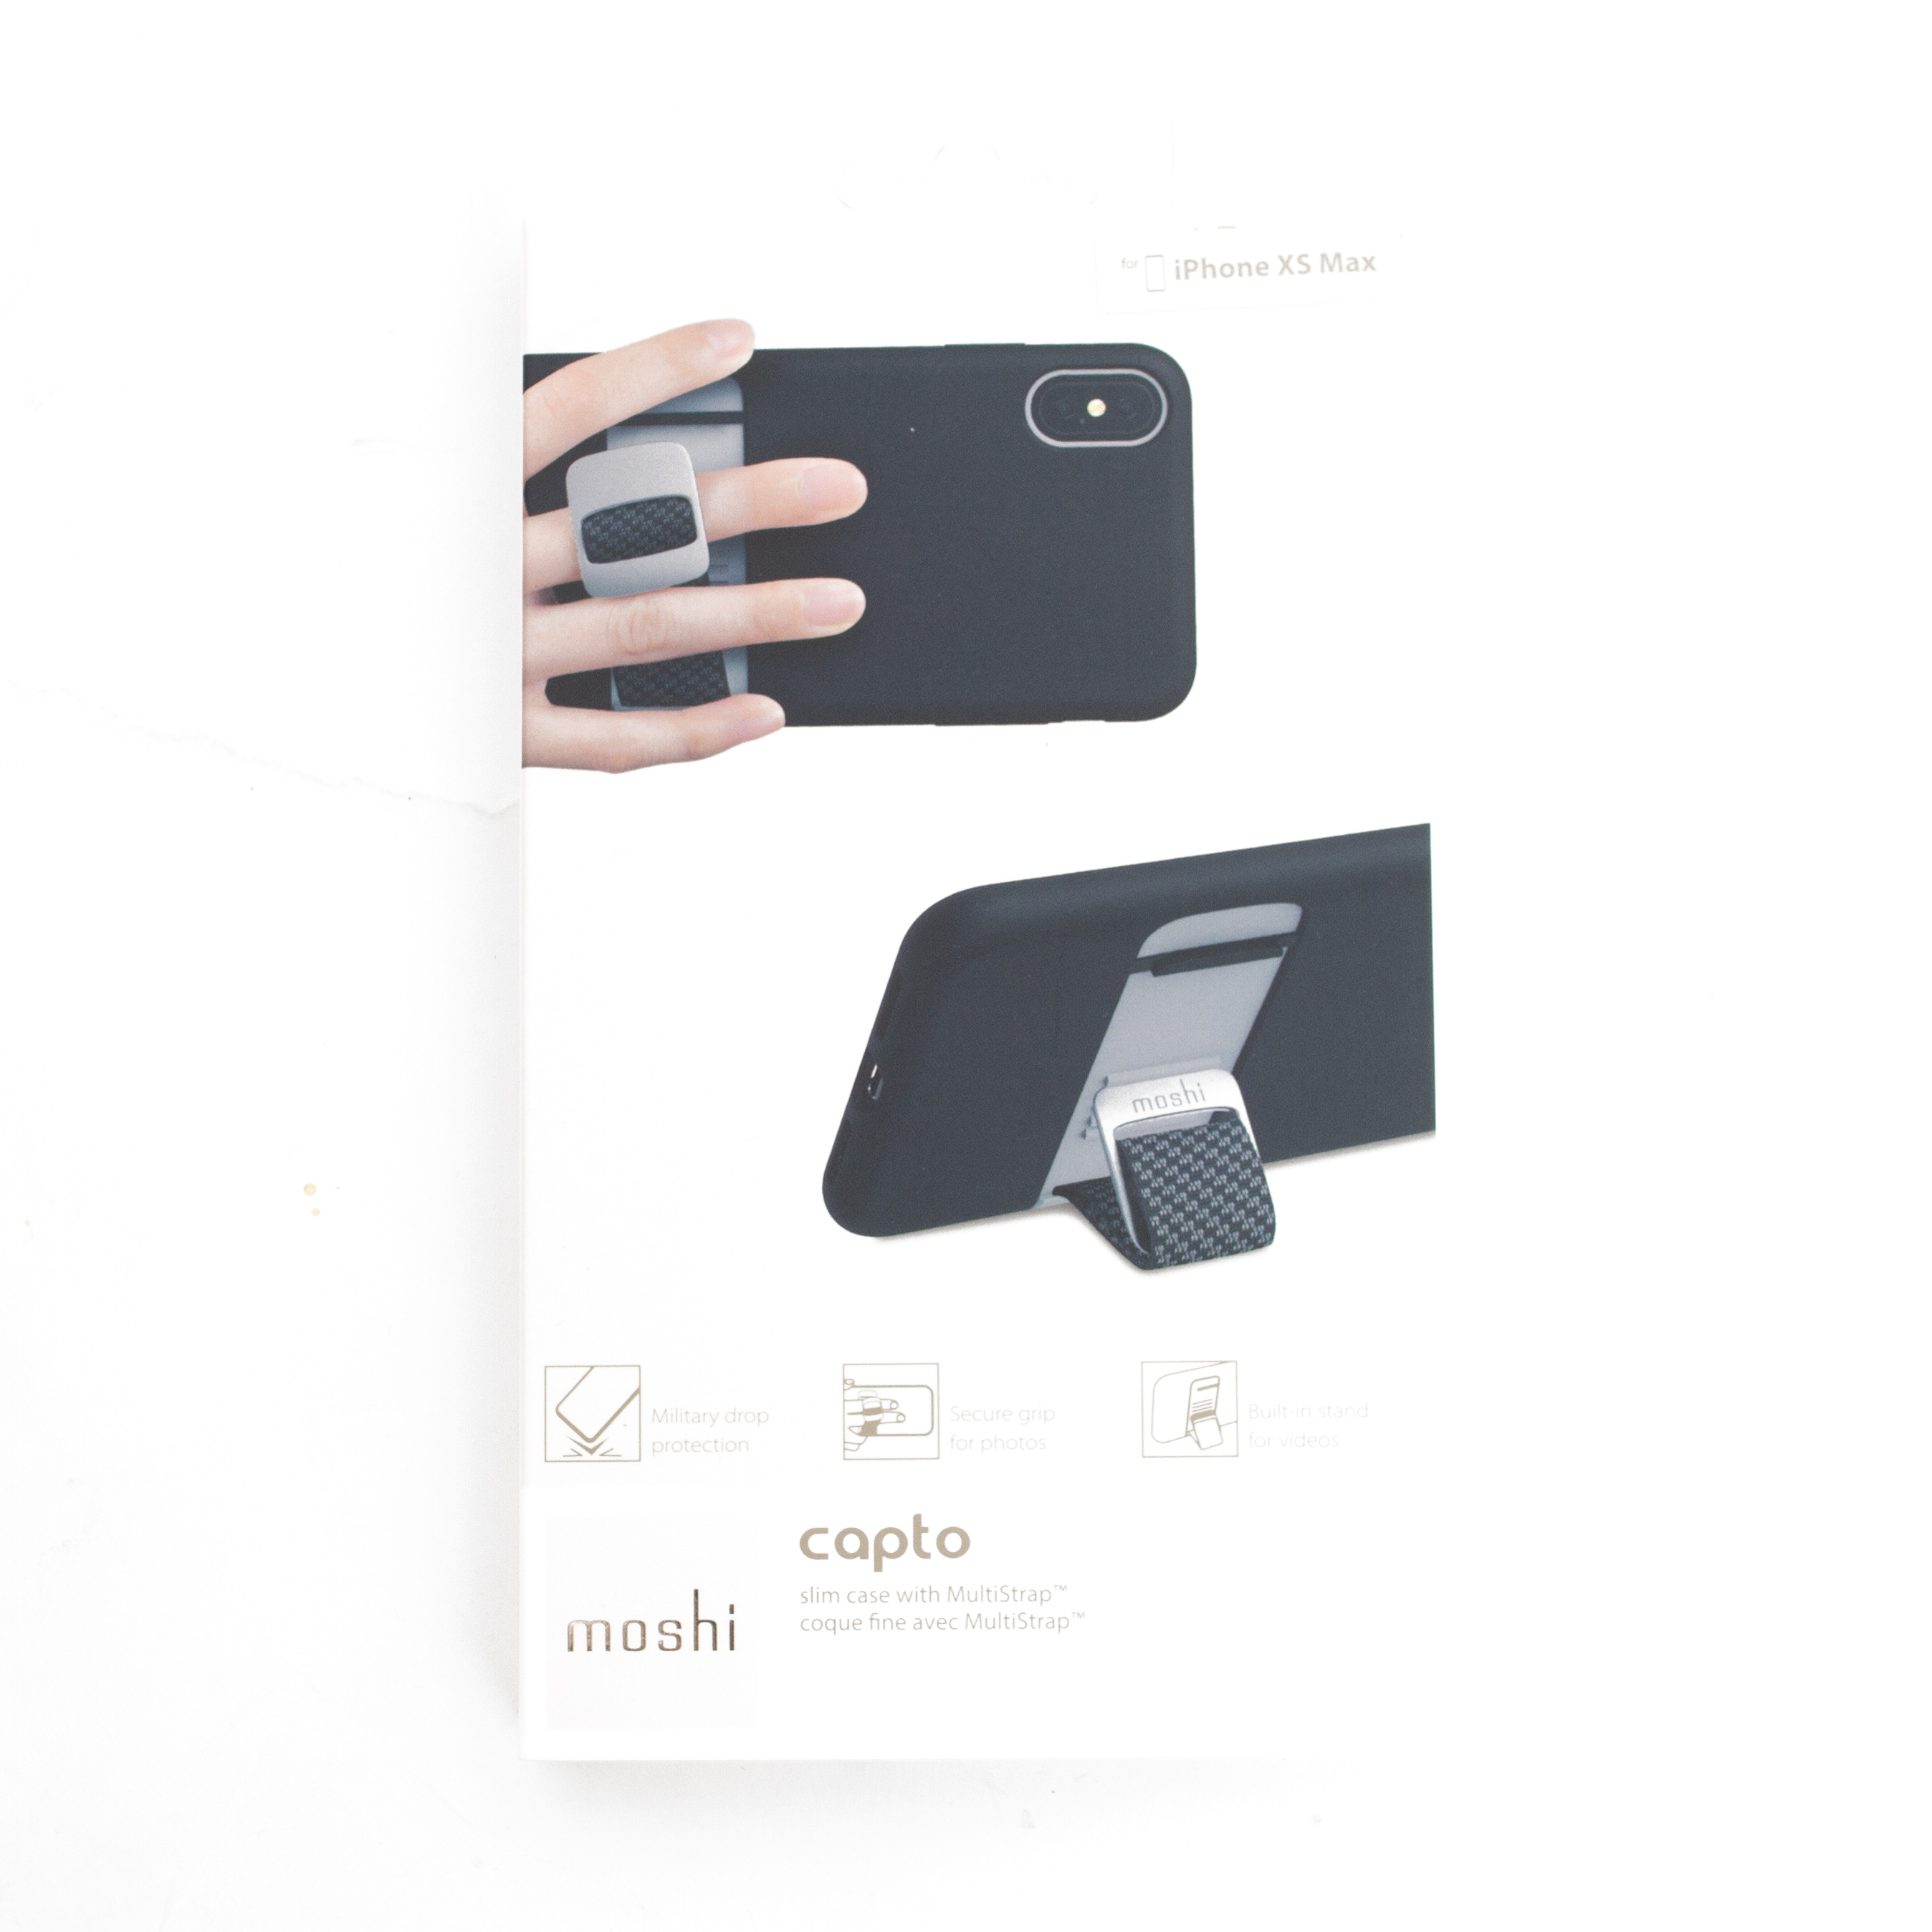 Moshi, Capto, Slim Case, iPhone, Black